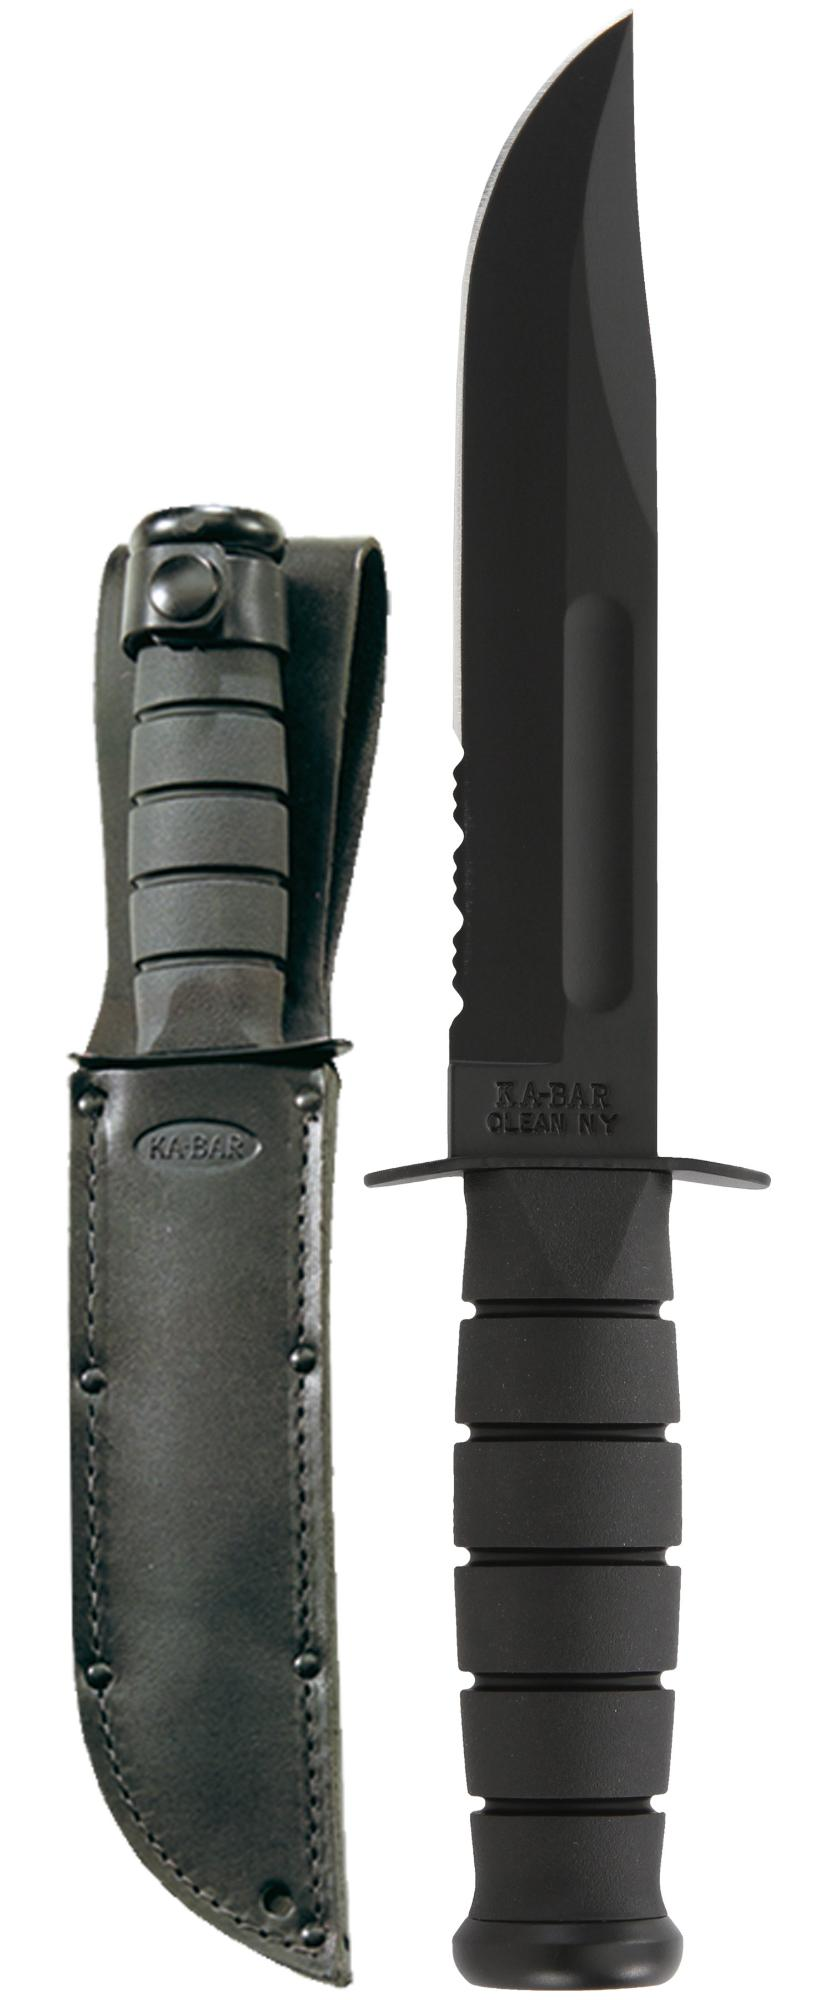 KABAR USMC Black Serrated Knife with Leather Sheath - Gear For Adventure